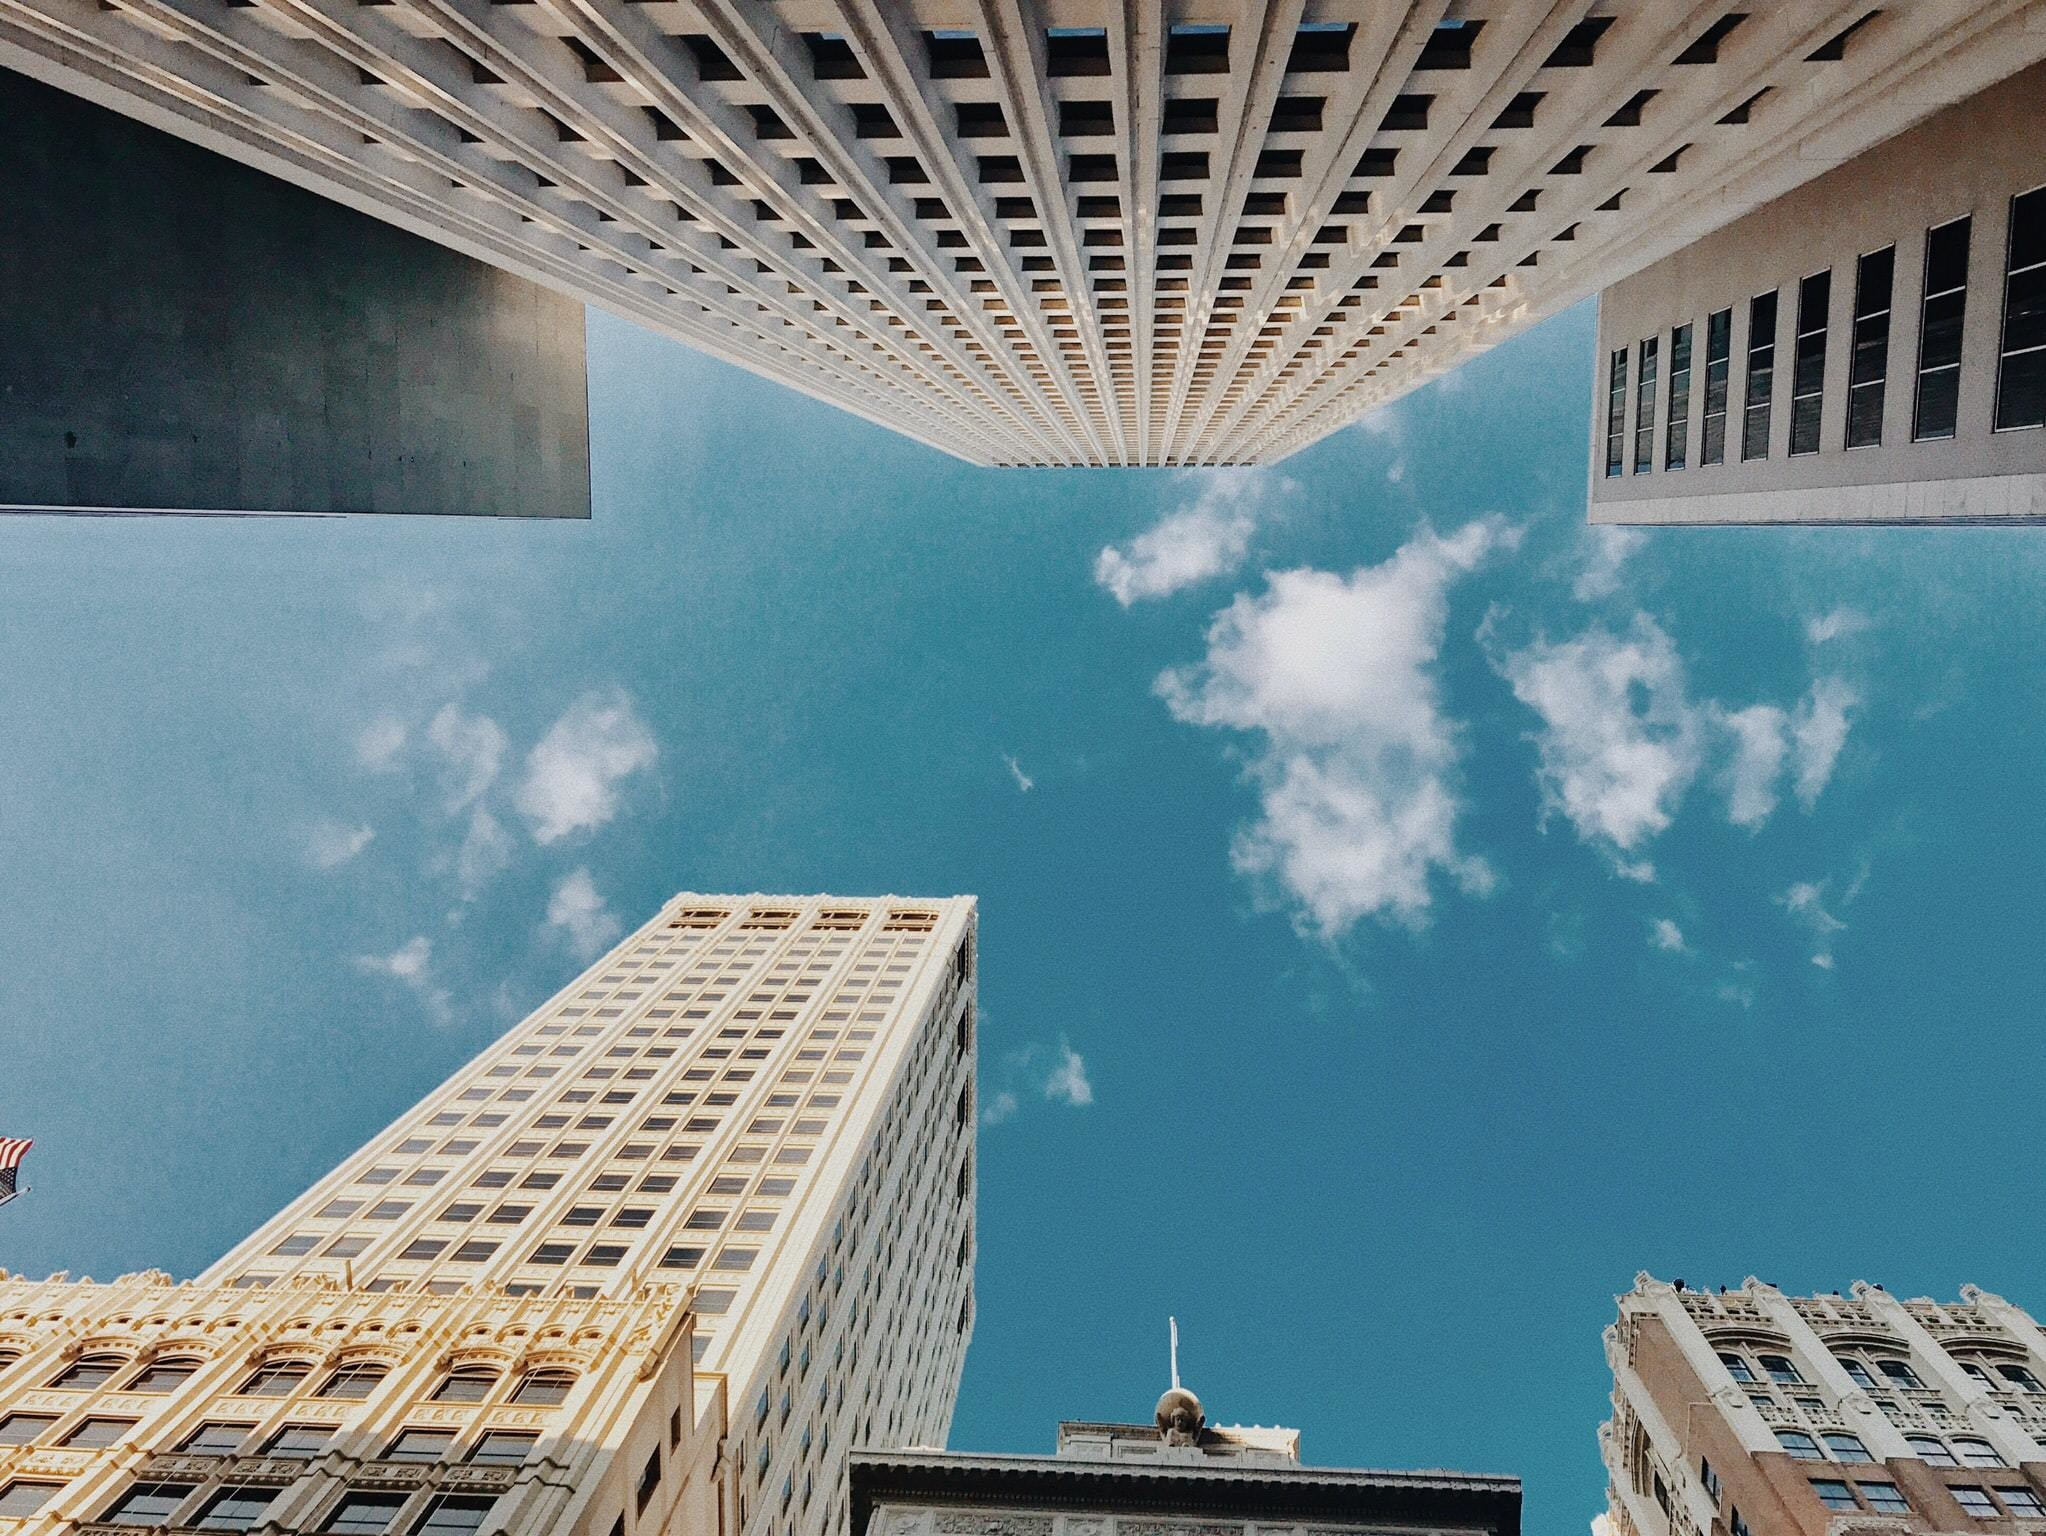 real estate in a city, shot of buildings from below